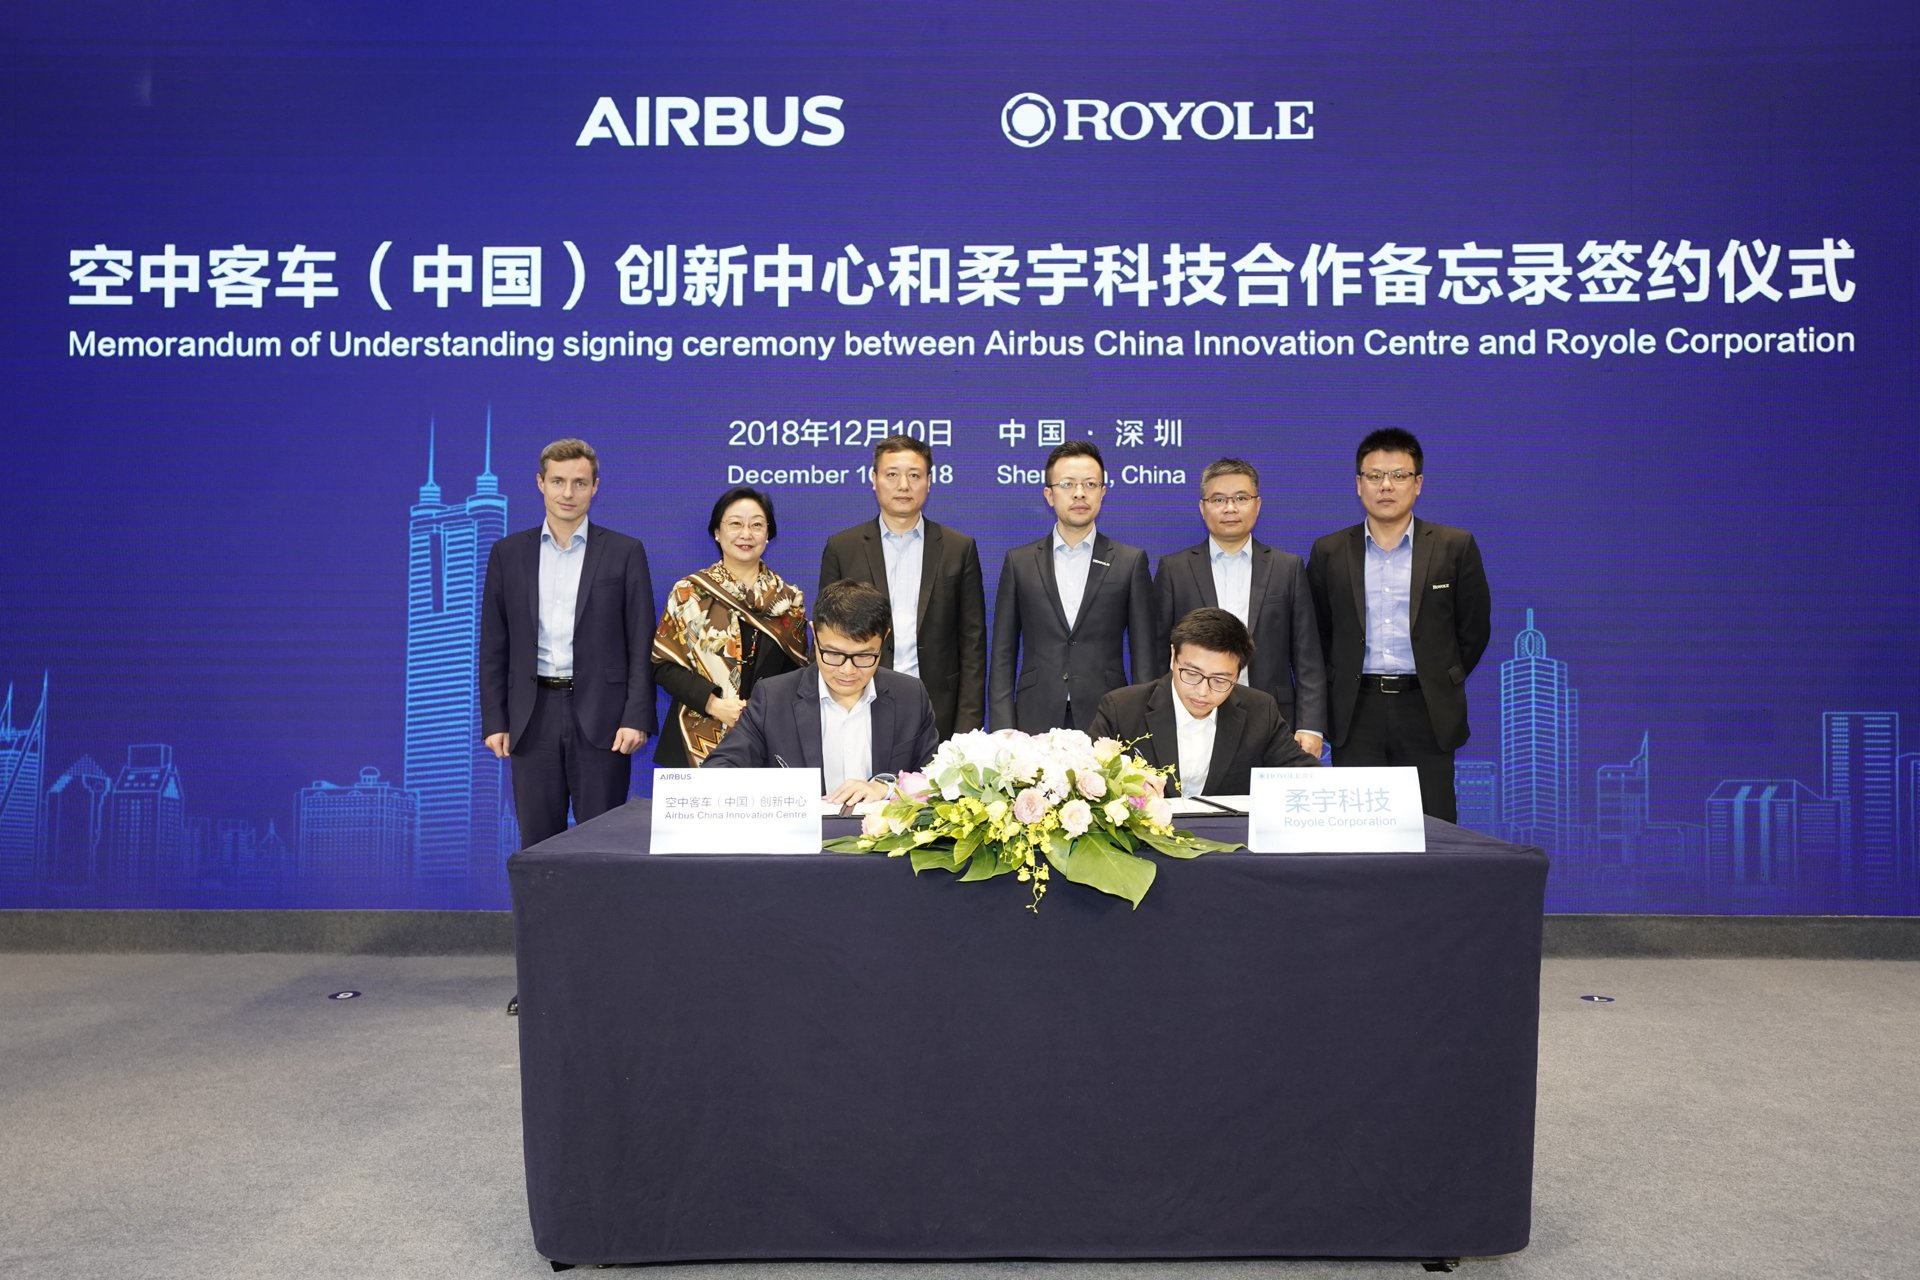 Airbus China Innovation Centre (ACIC) and Royole Technology signed a Memorandum of Understanding to develop applications that implement flexible electronic technologies in cabin environments